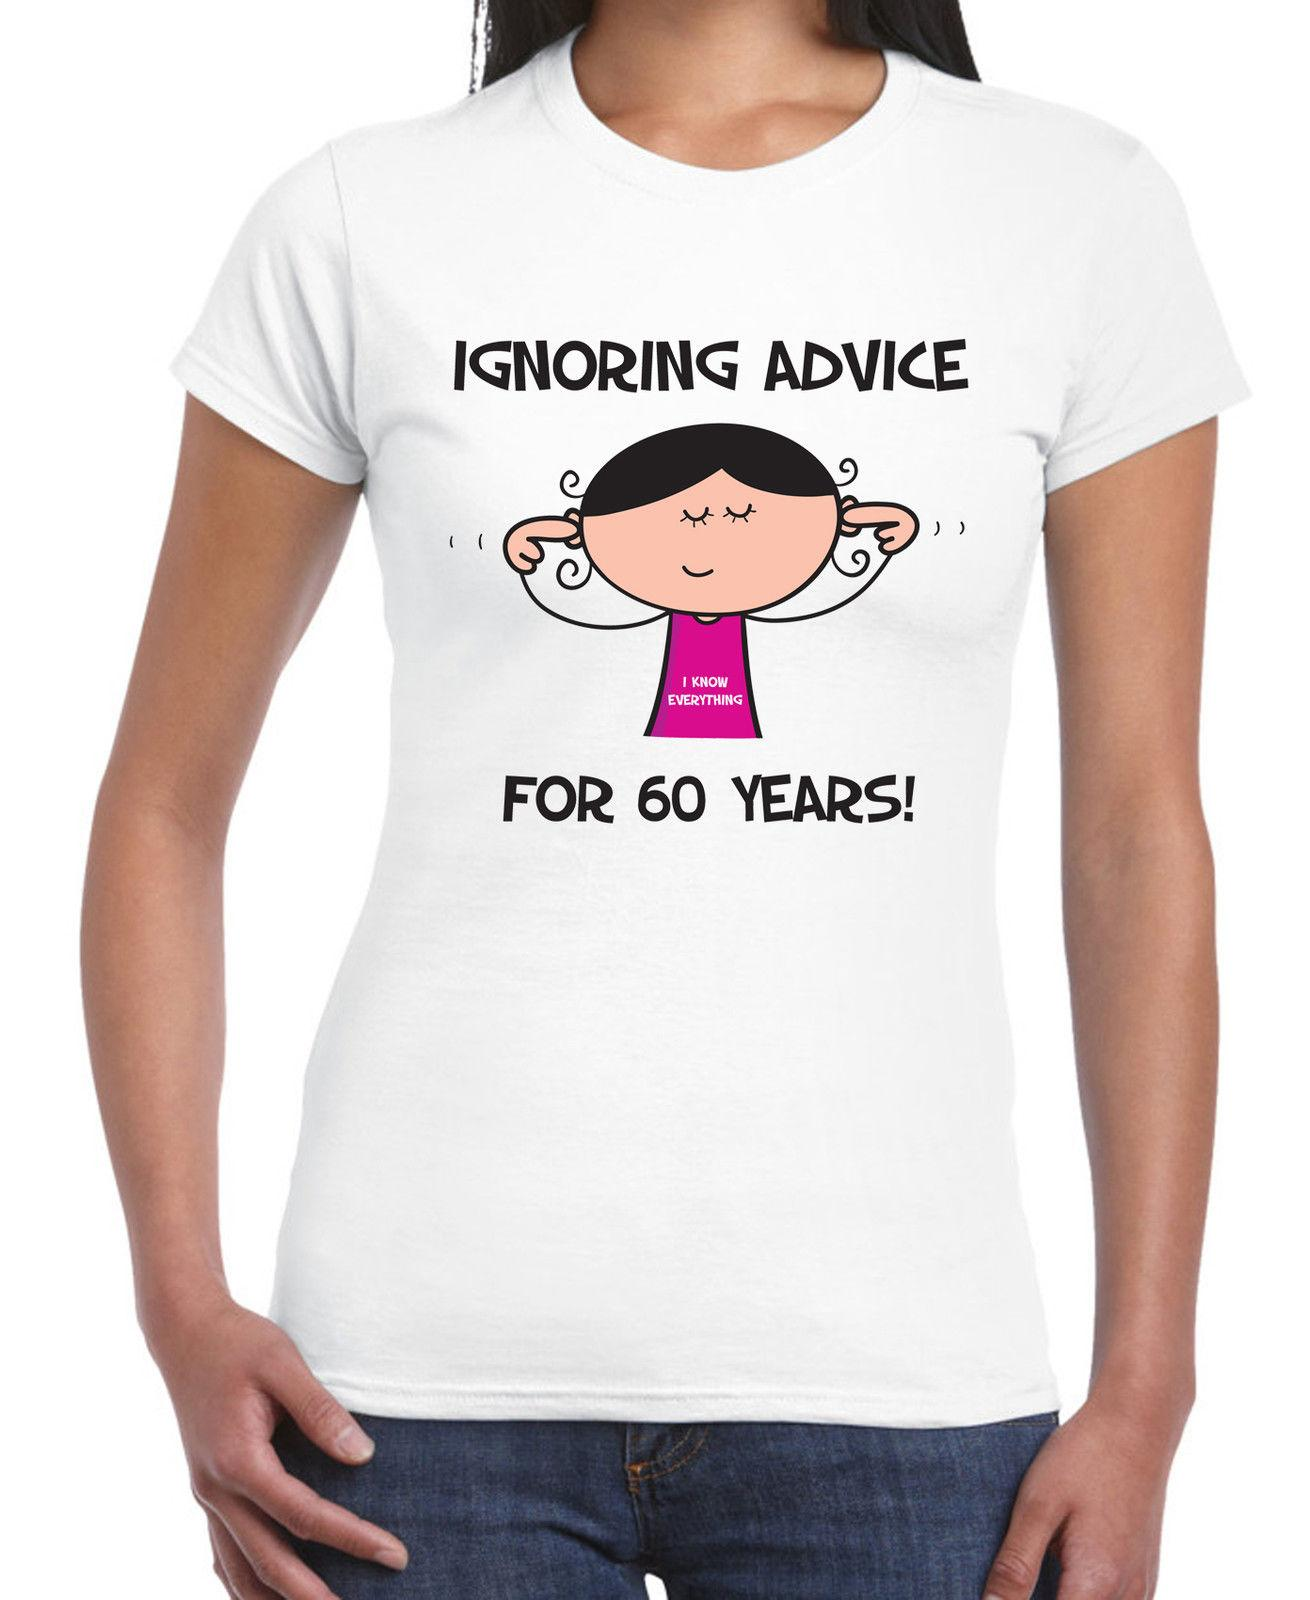 IGNORING ADVICE FOR 60 YEARS 60TH BIRTHDAY T SHIRT Gift Present Funny All That Tshirt Cool Tee Designs From Lanshiren3 1164